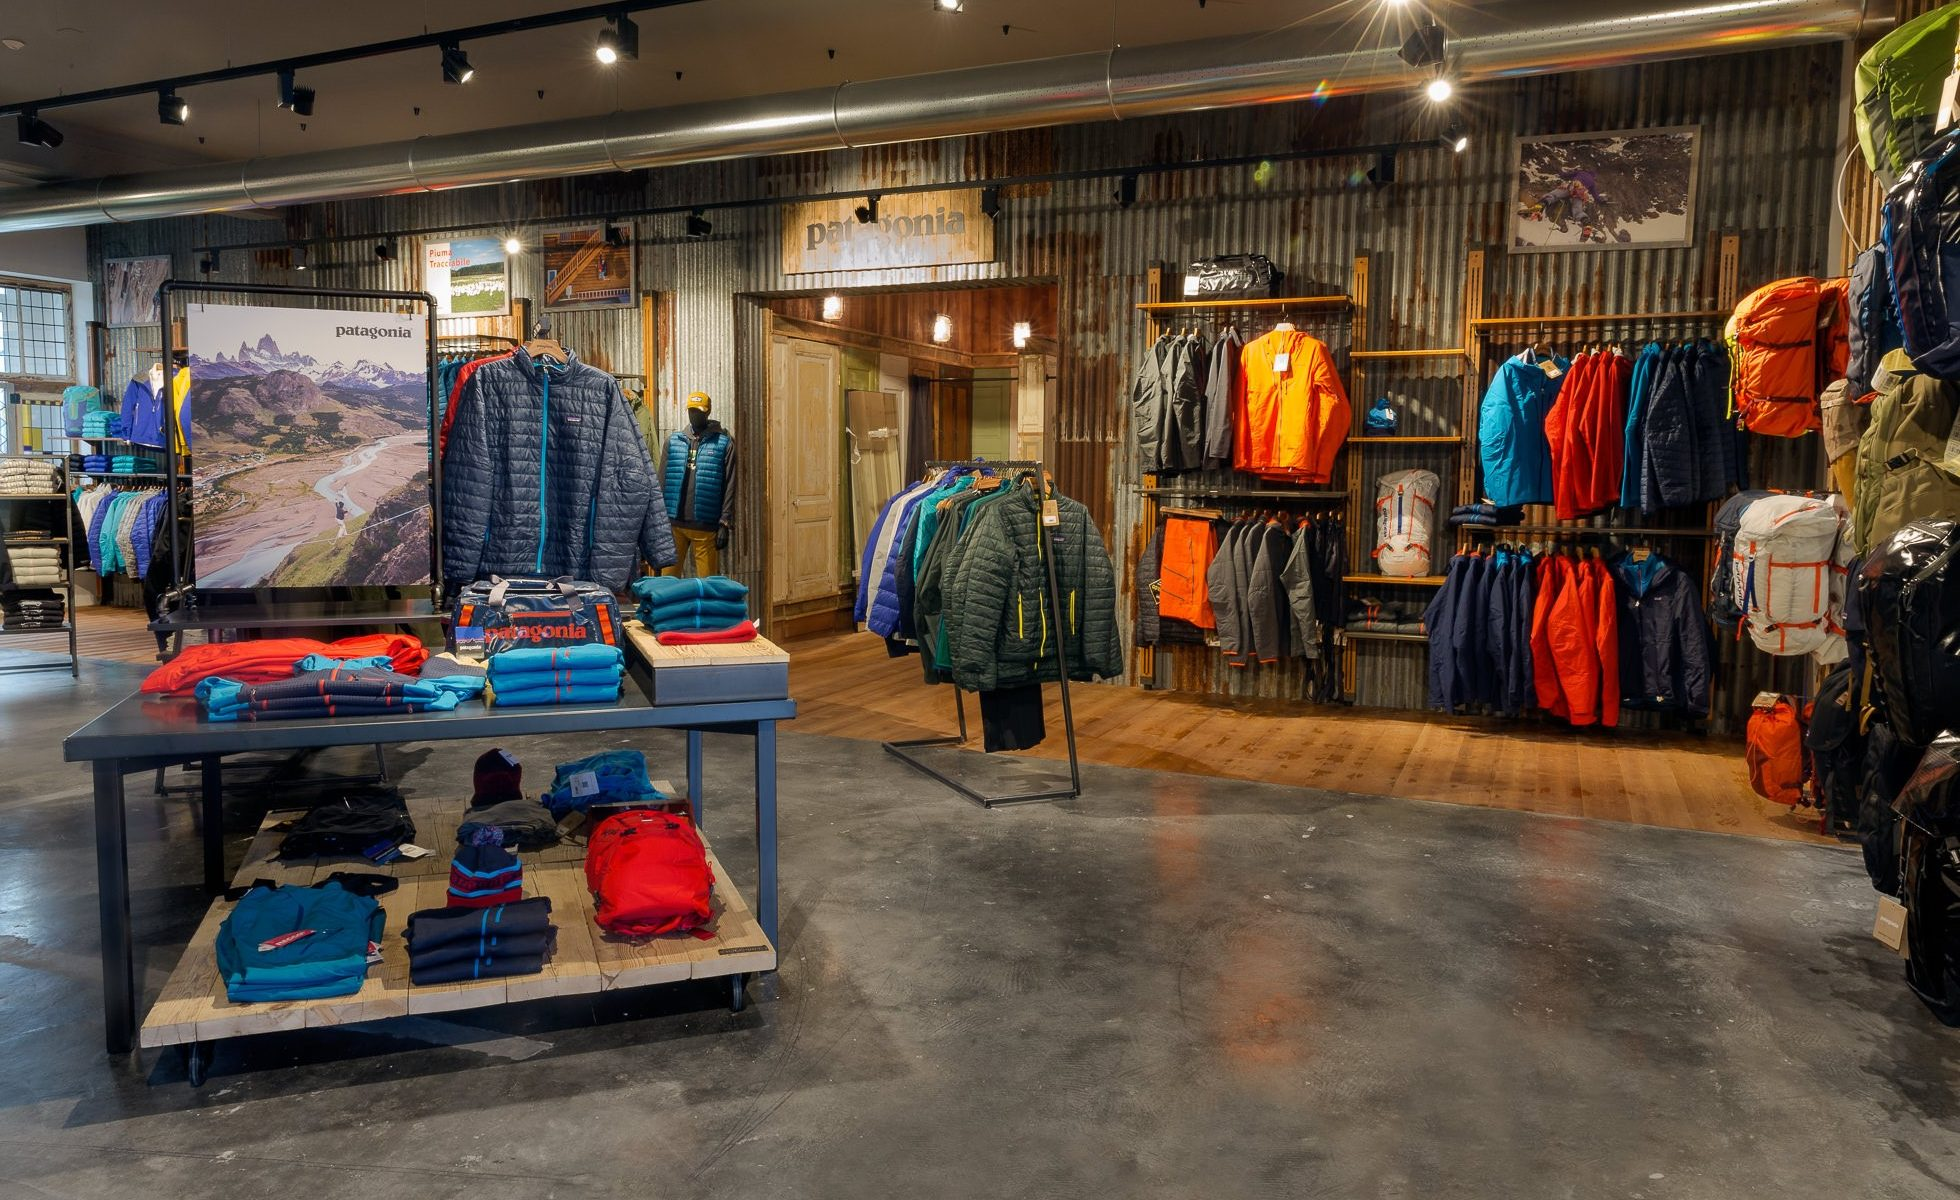 Patagonia To Open First Uk Store In Manchester